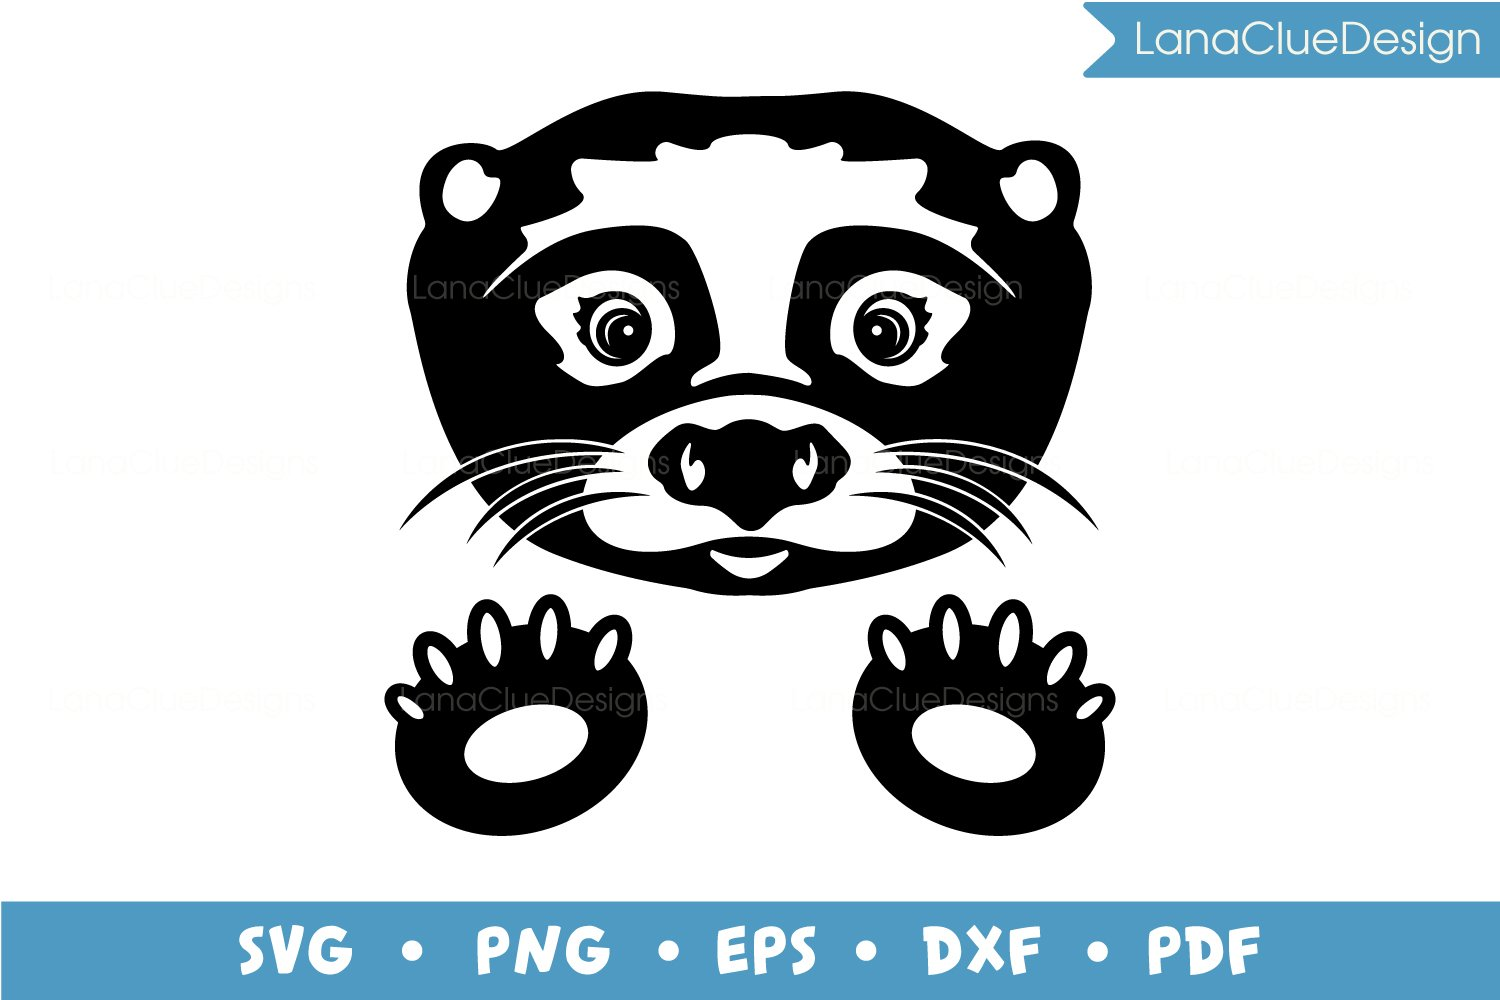 Otter SVG, Silhouette Cut File example image 2